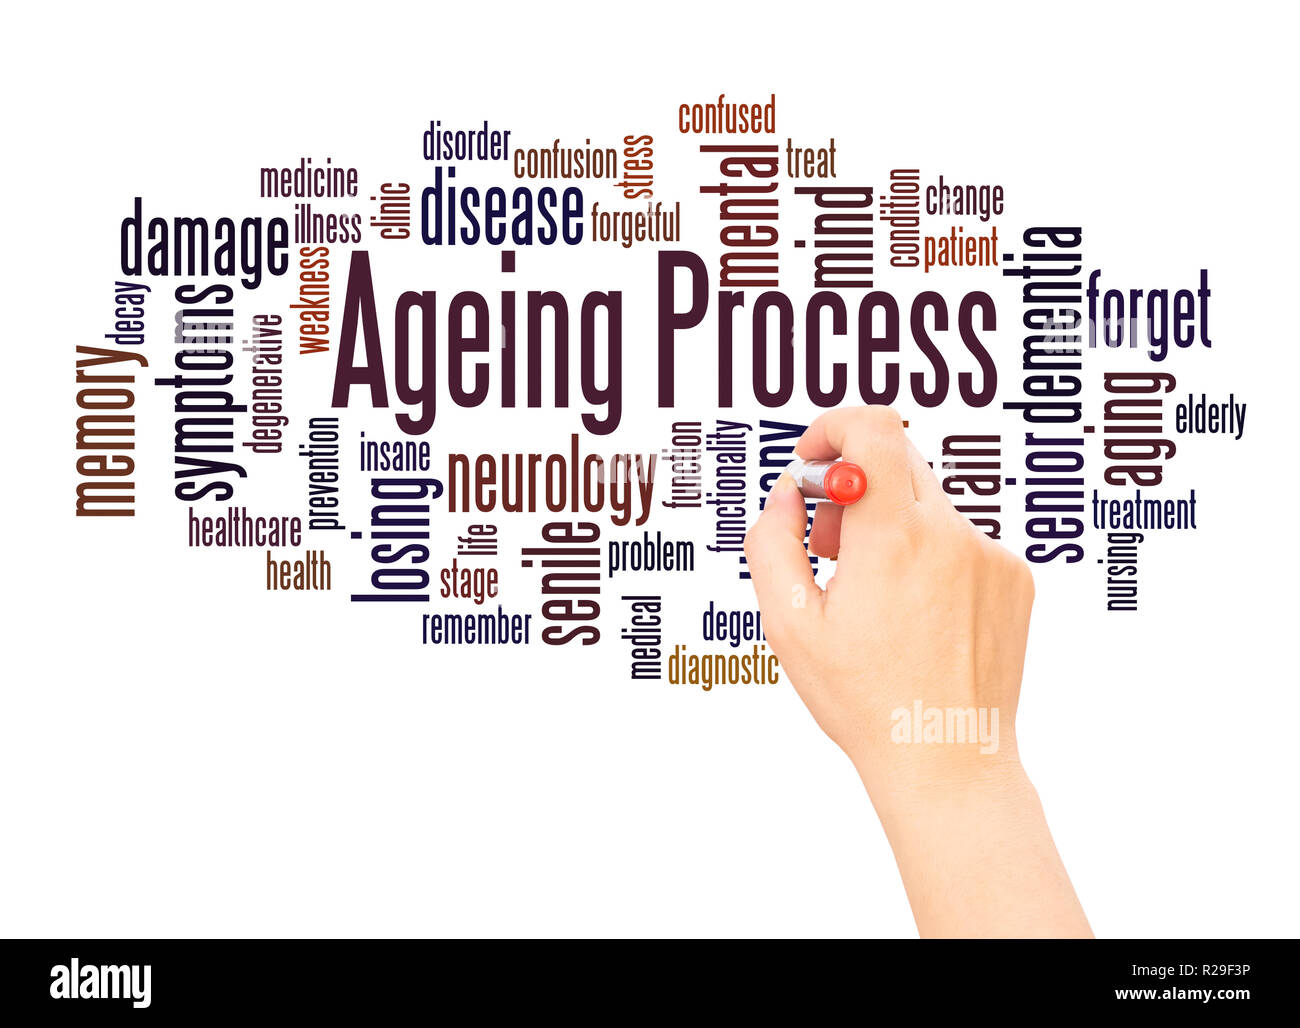 Ageing Process word cloud hand writing concept on white background. - Stock Image